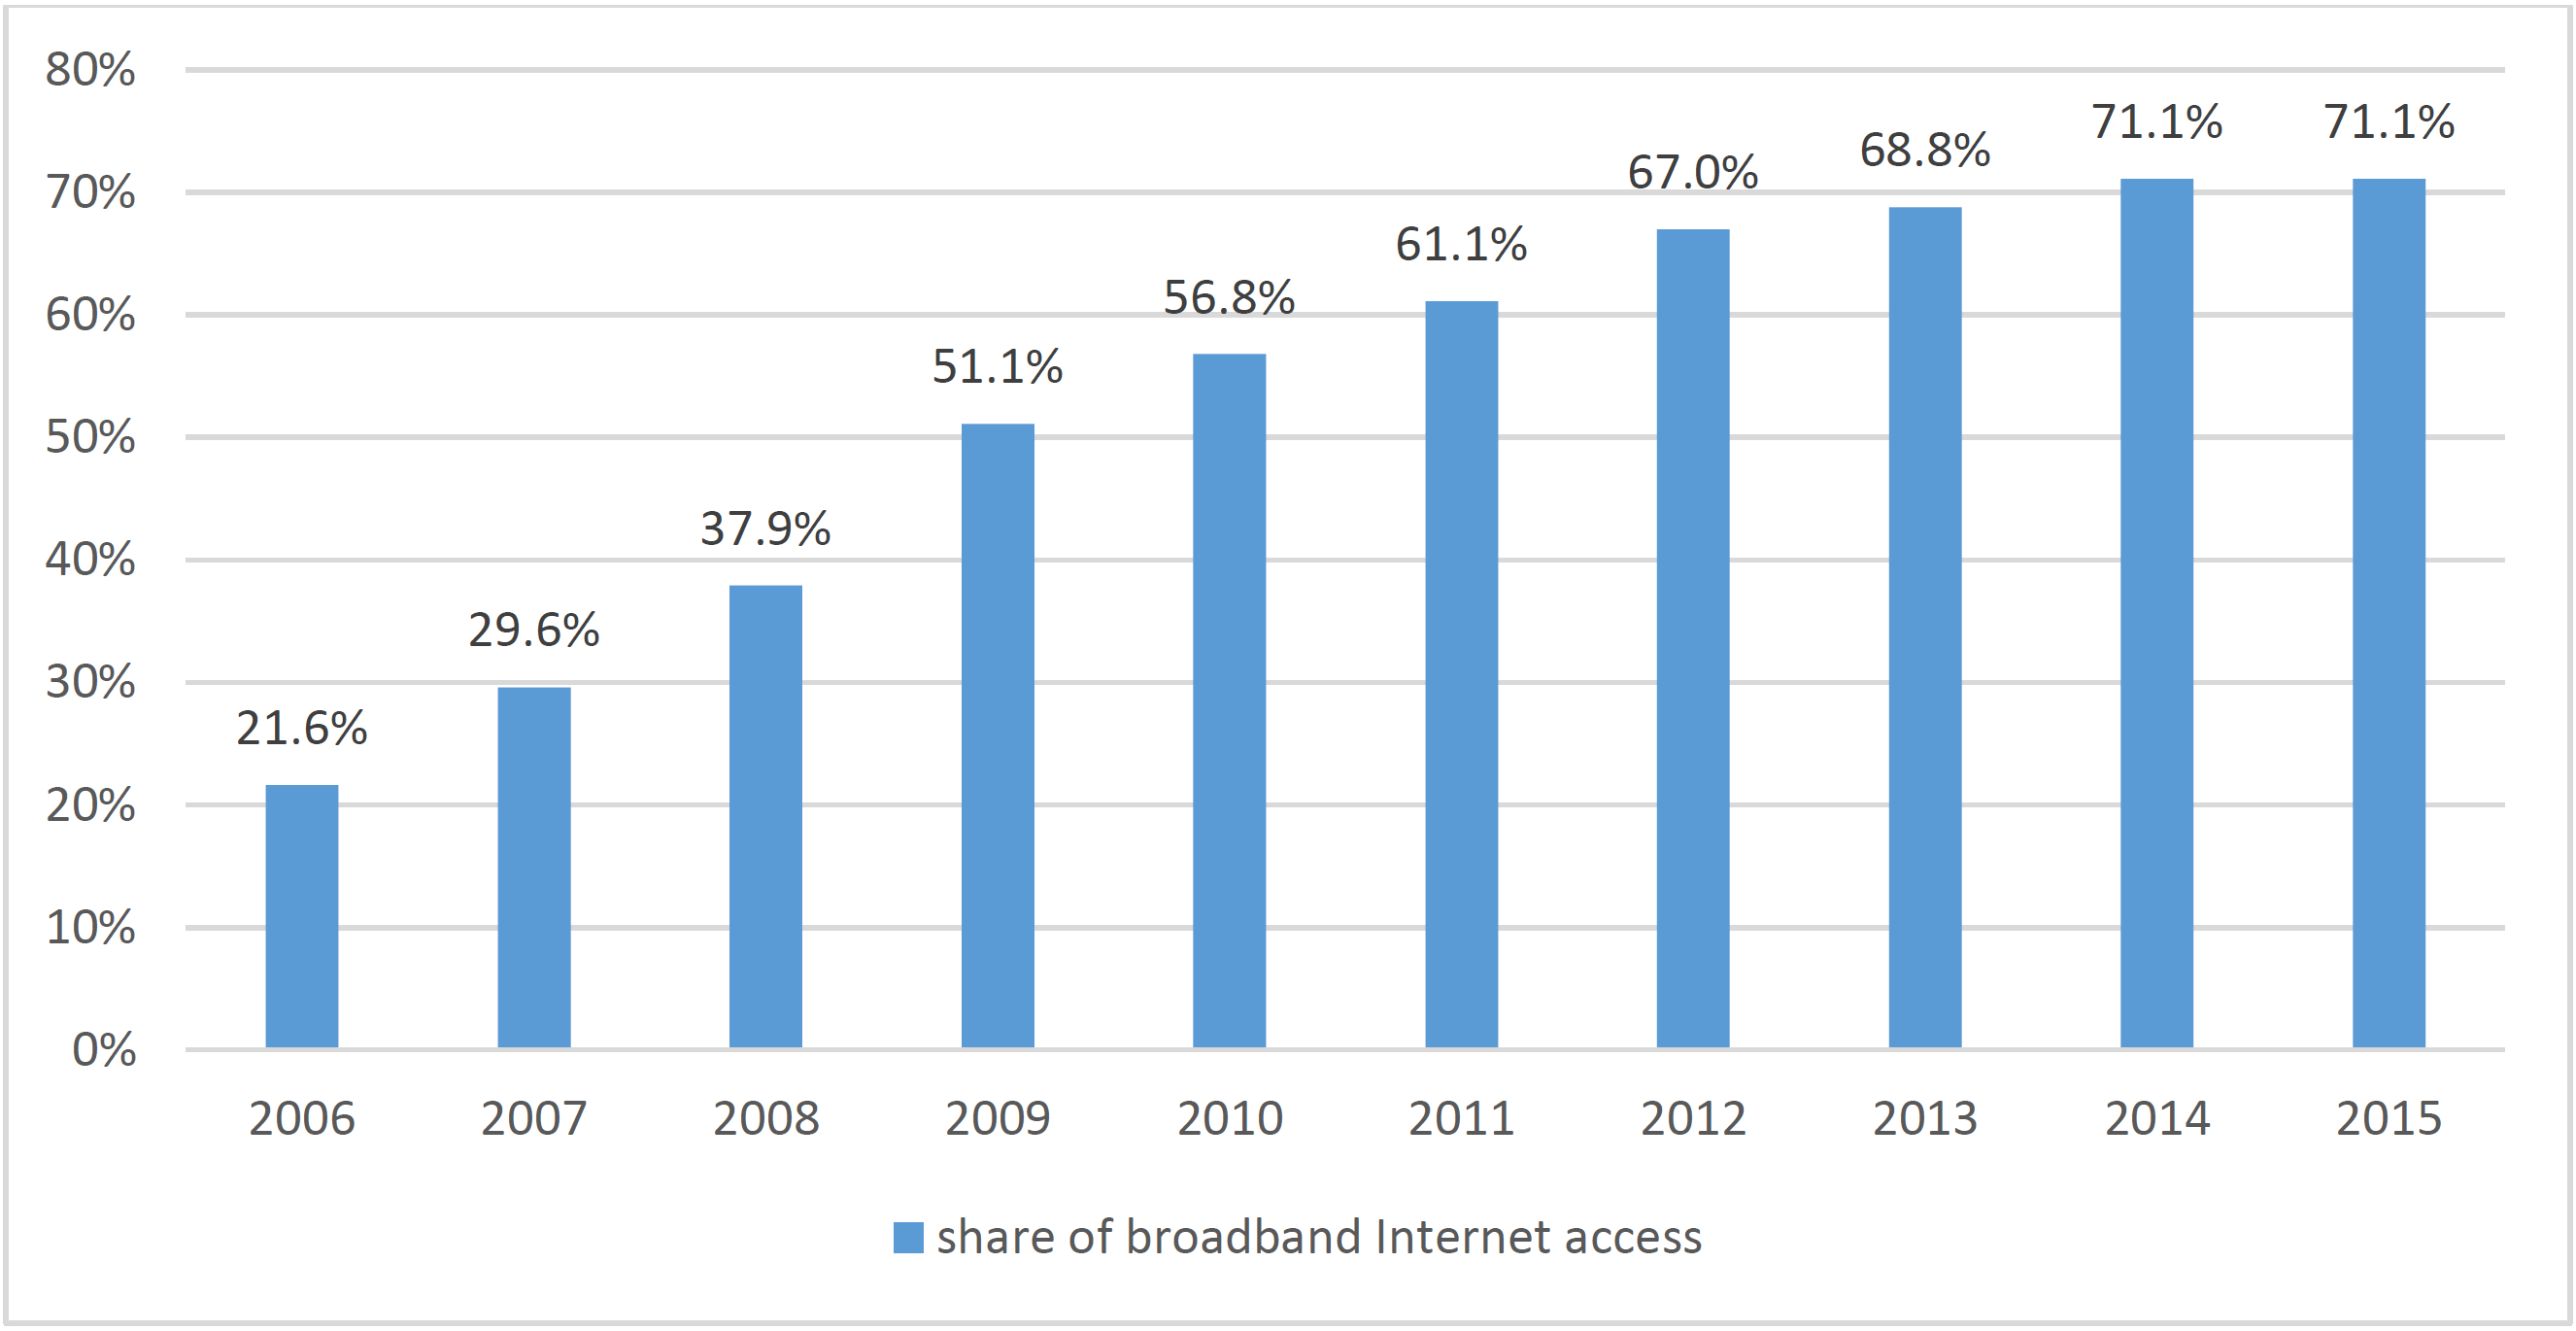 Figure 5 Penetration rate of broadband Internet access services in Poland